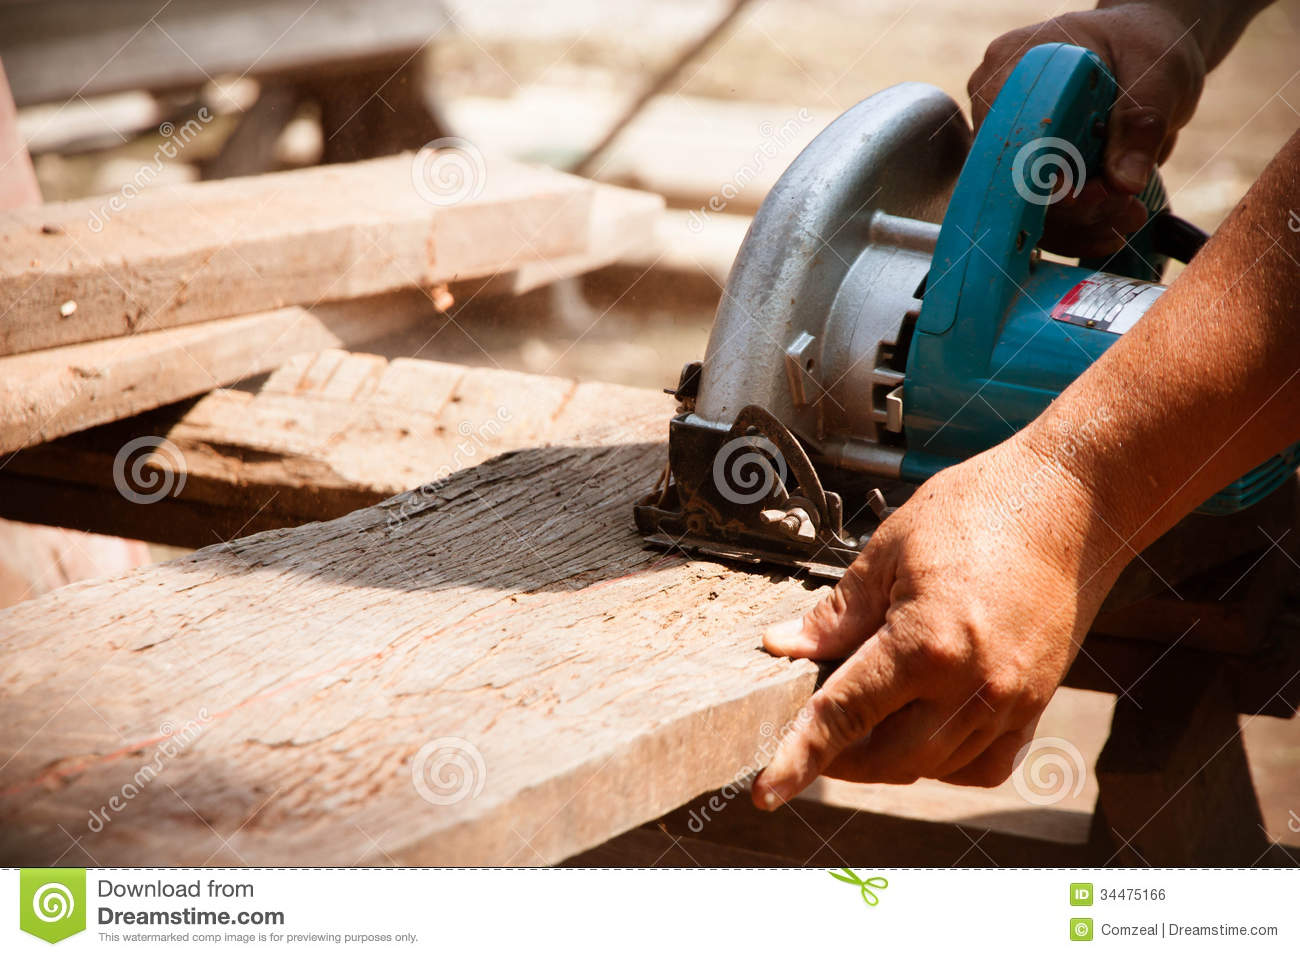 how to cut plywood straight with hand saw